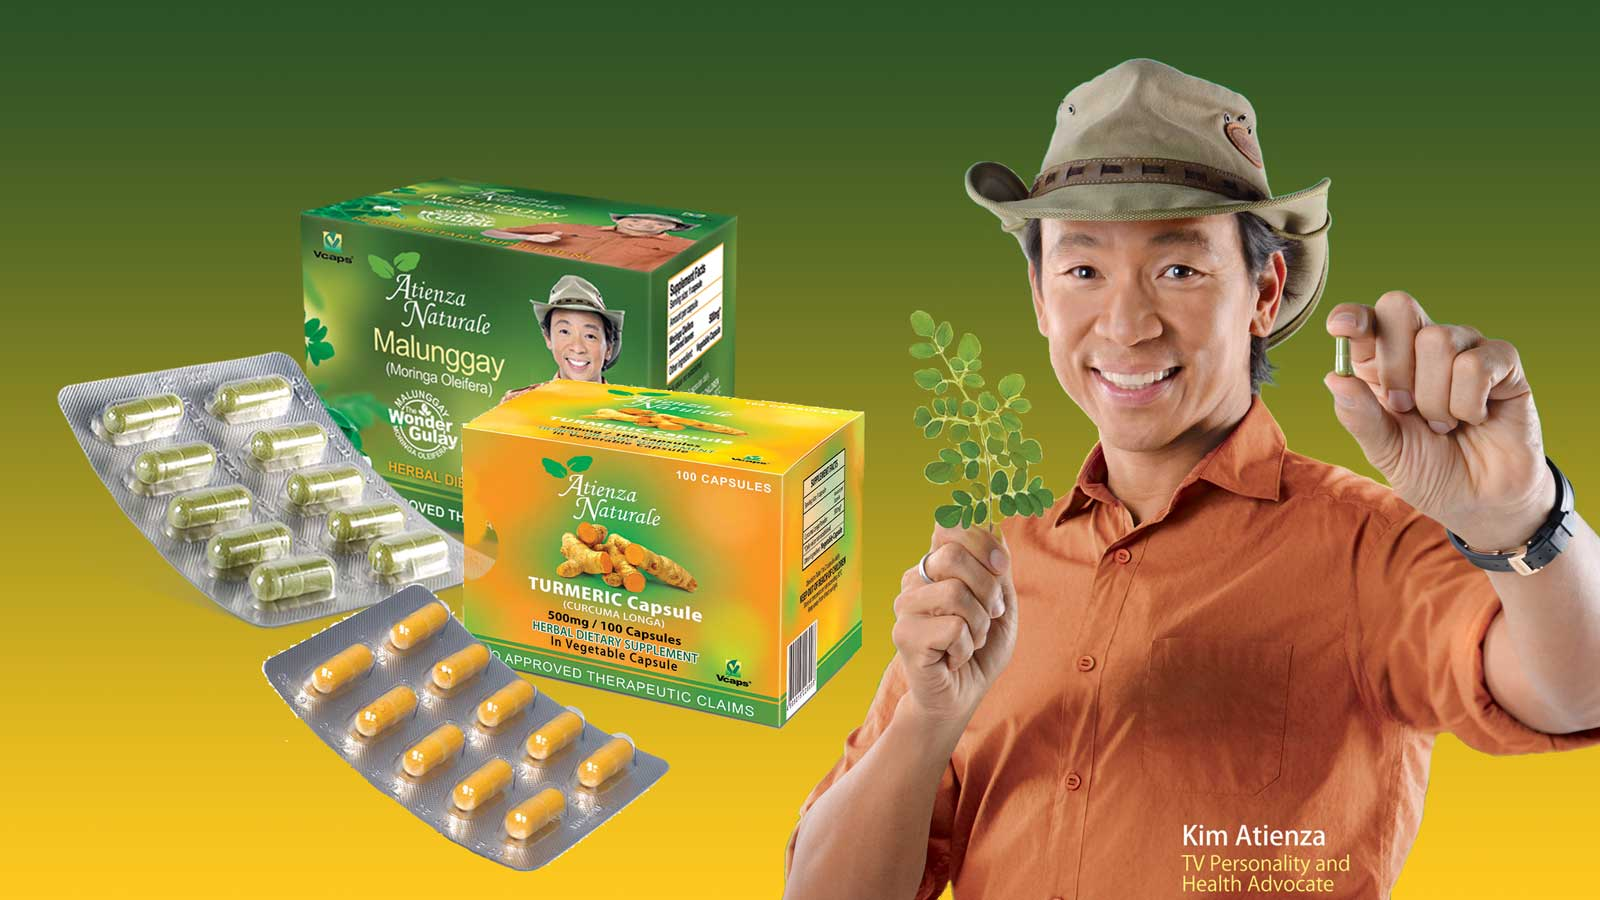 The herbal solution to good health in capsule form